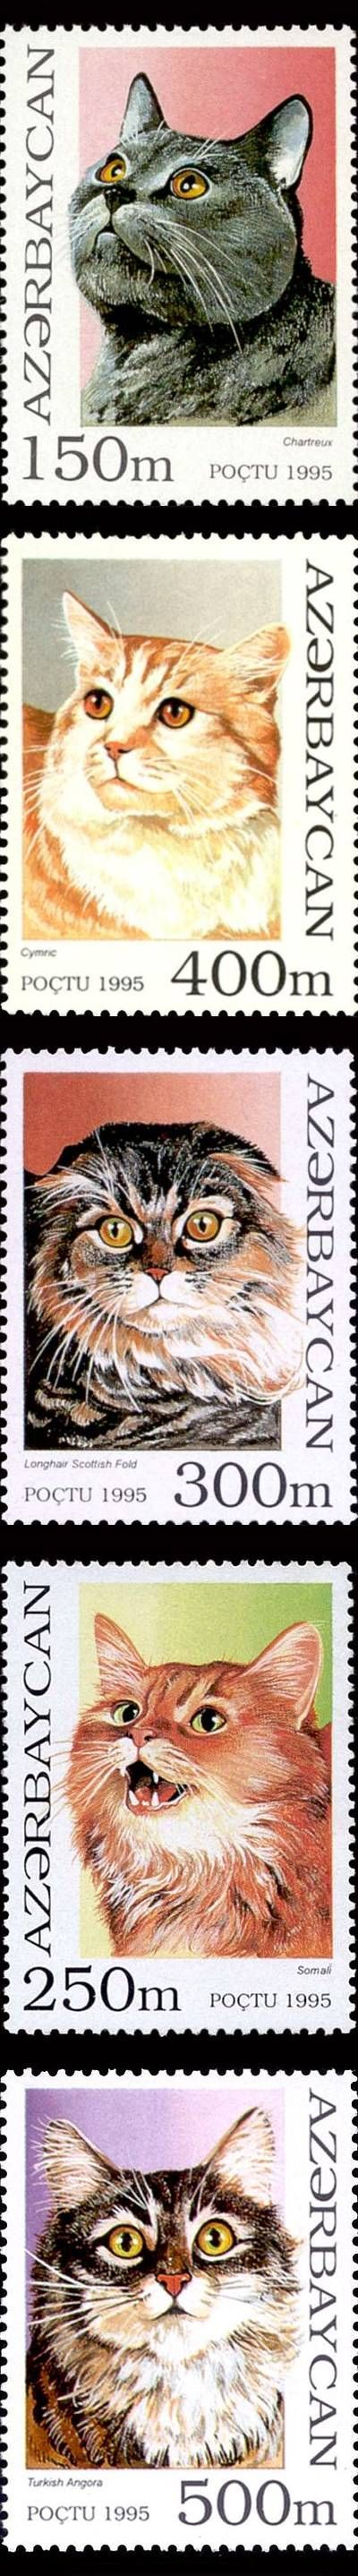 Azerbaijan cat stamp series 1995 I want to go there!